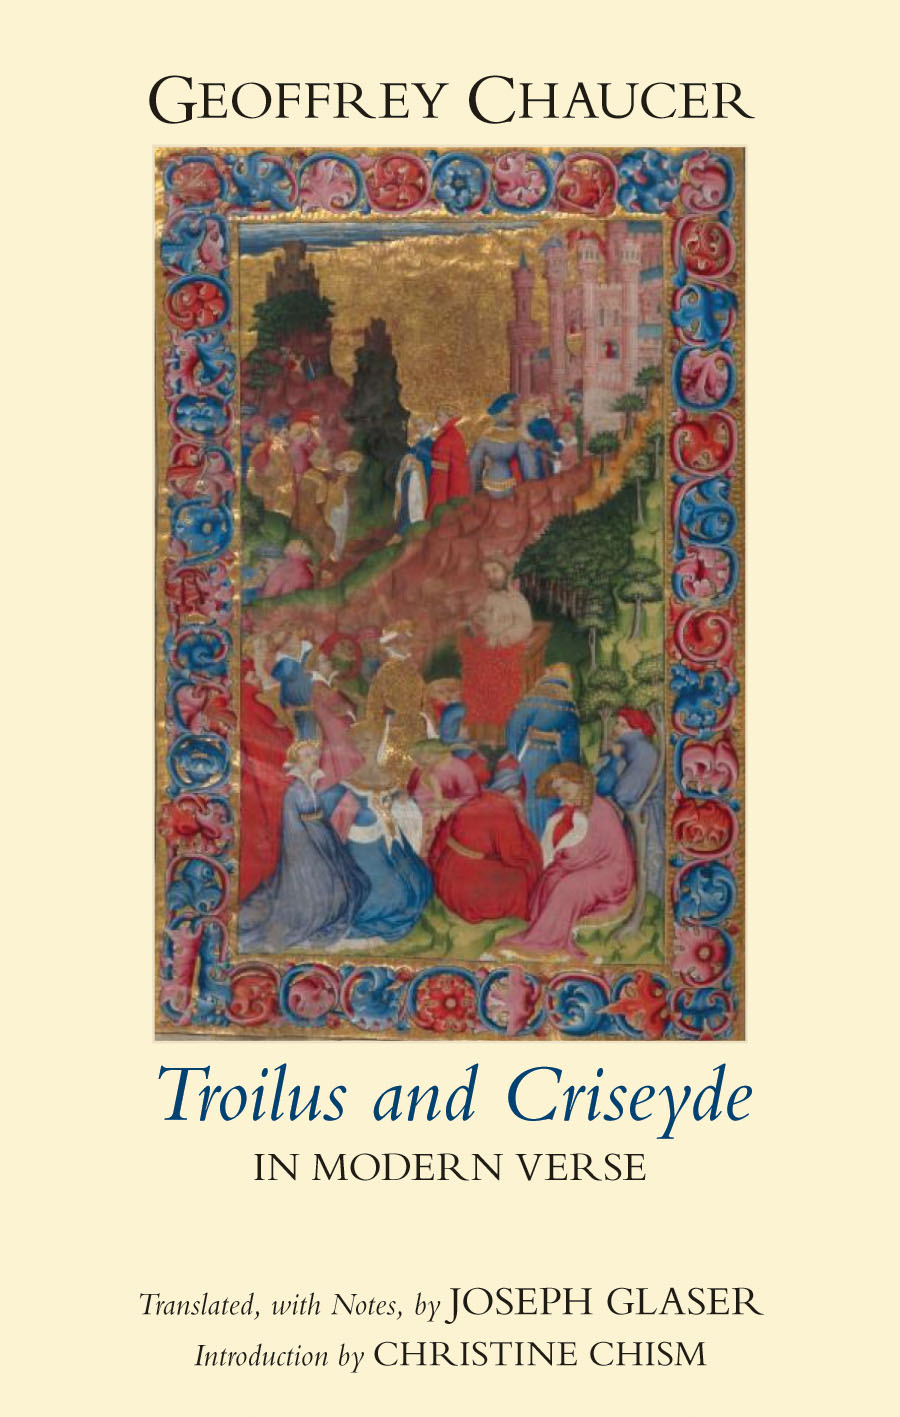 chaucer troilus and criseyde This one-page guide includes a plot summary and brief analysis of troilus and criseyde by geoffrey chaucer troilus and criseyde by geoffrey chaucer is widely regarded as one of [ ] view all titles other resources support troilus and criseyde summary geoffrey chaucer troilus and criseyde.